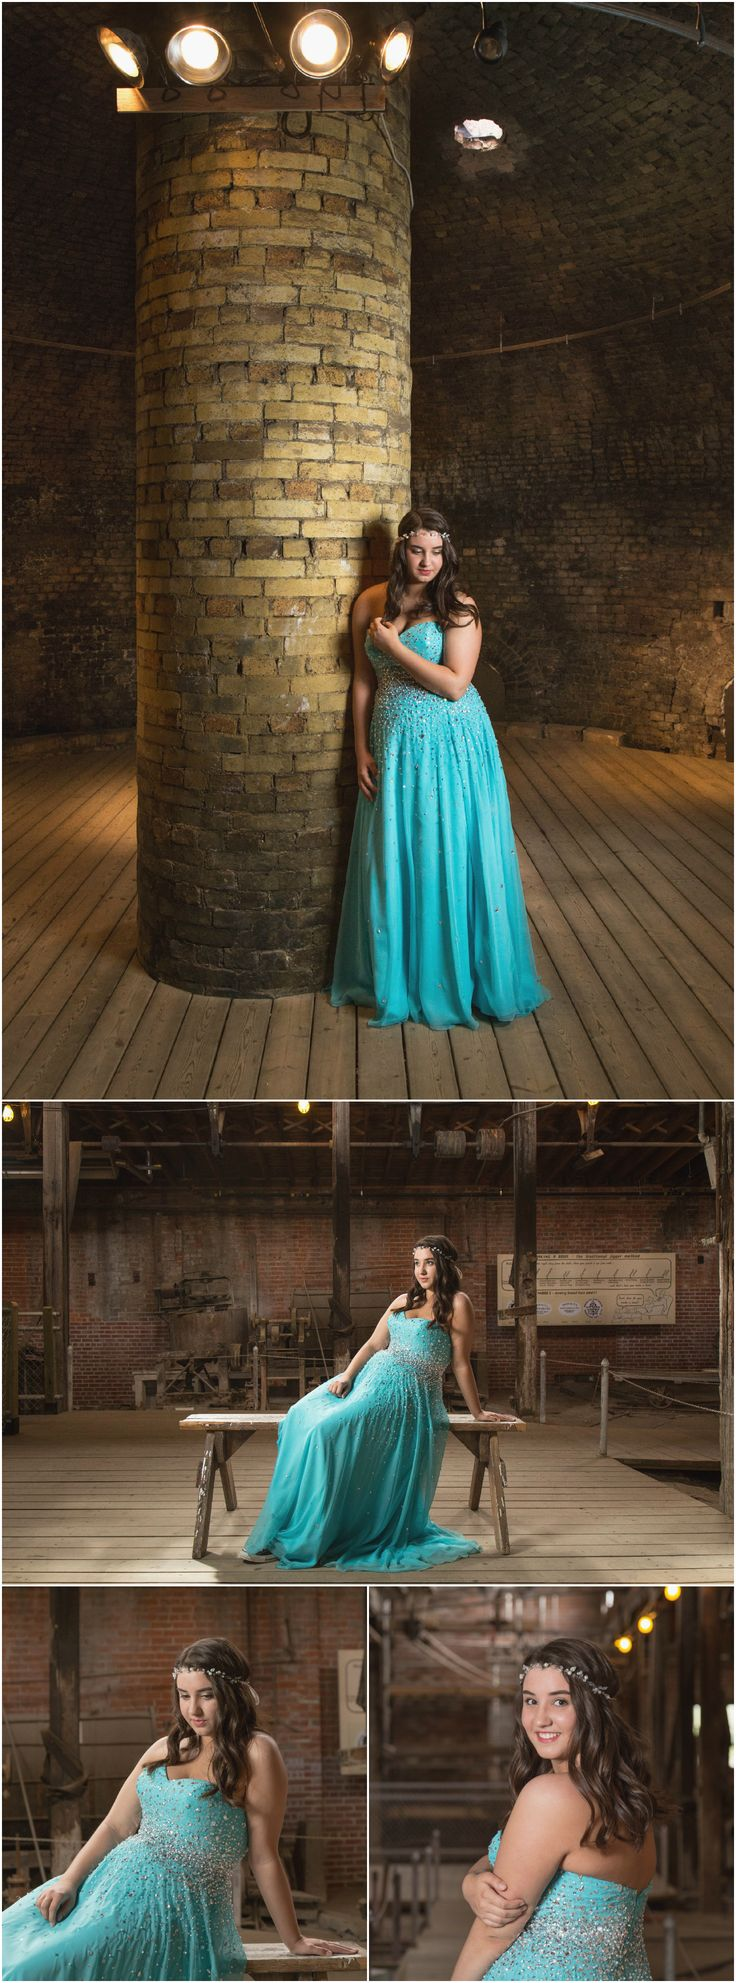 High School Graduation 2015 Highlights | Medicine Hat Photography.  Photo ideas for grad student in teal dress with crystals for prom. Taken by Woods Photography at Medalta Potteries in Medicine Hat.  #graduation #prom #medaltapotteries